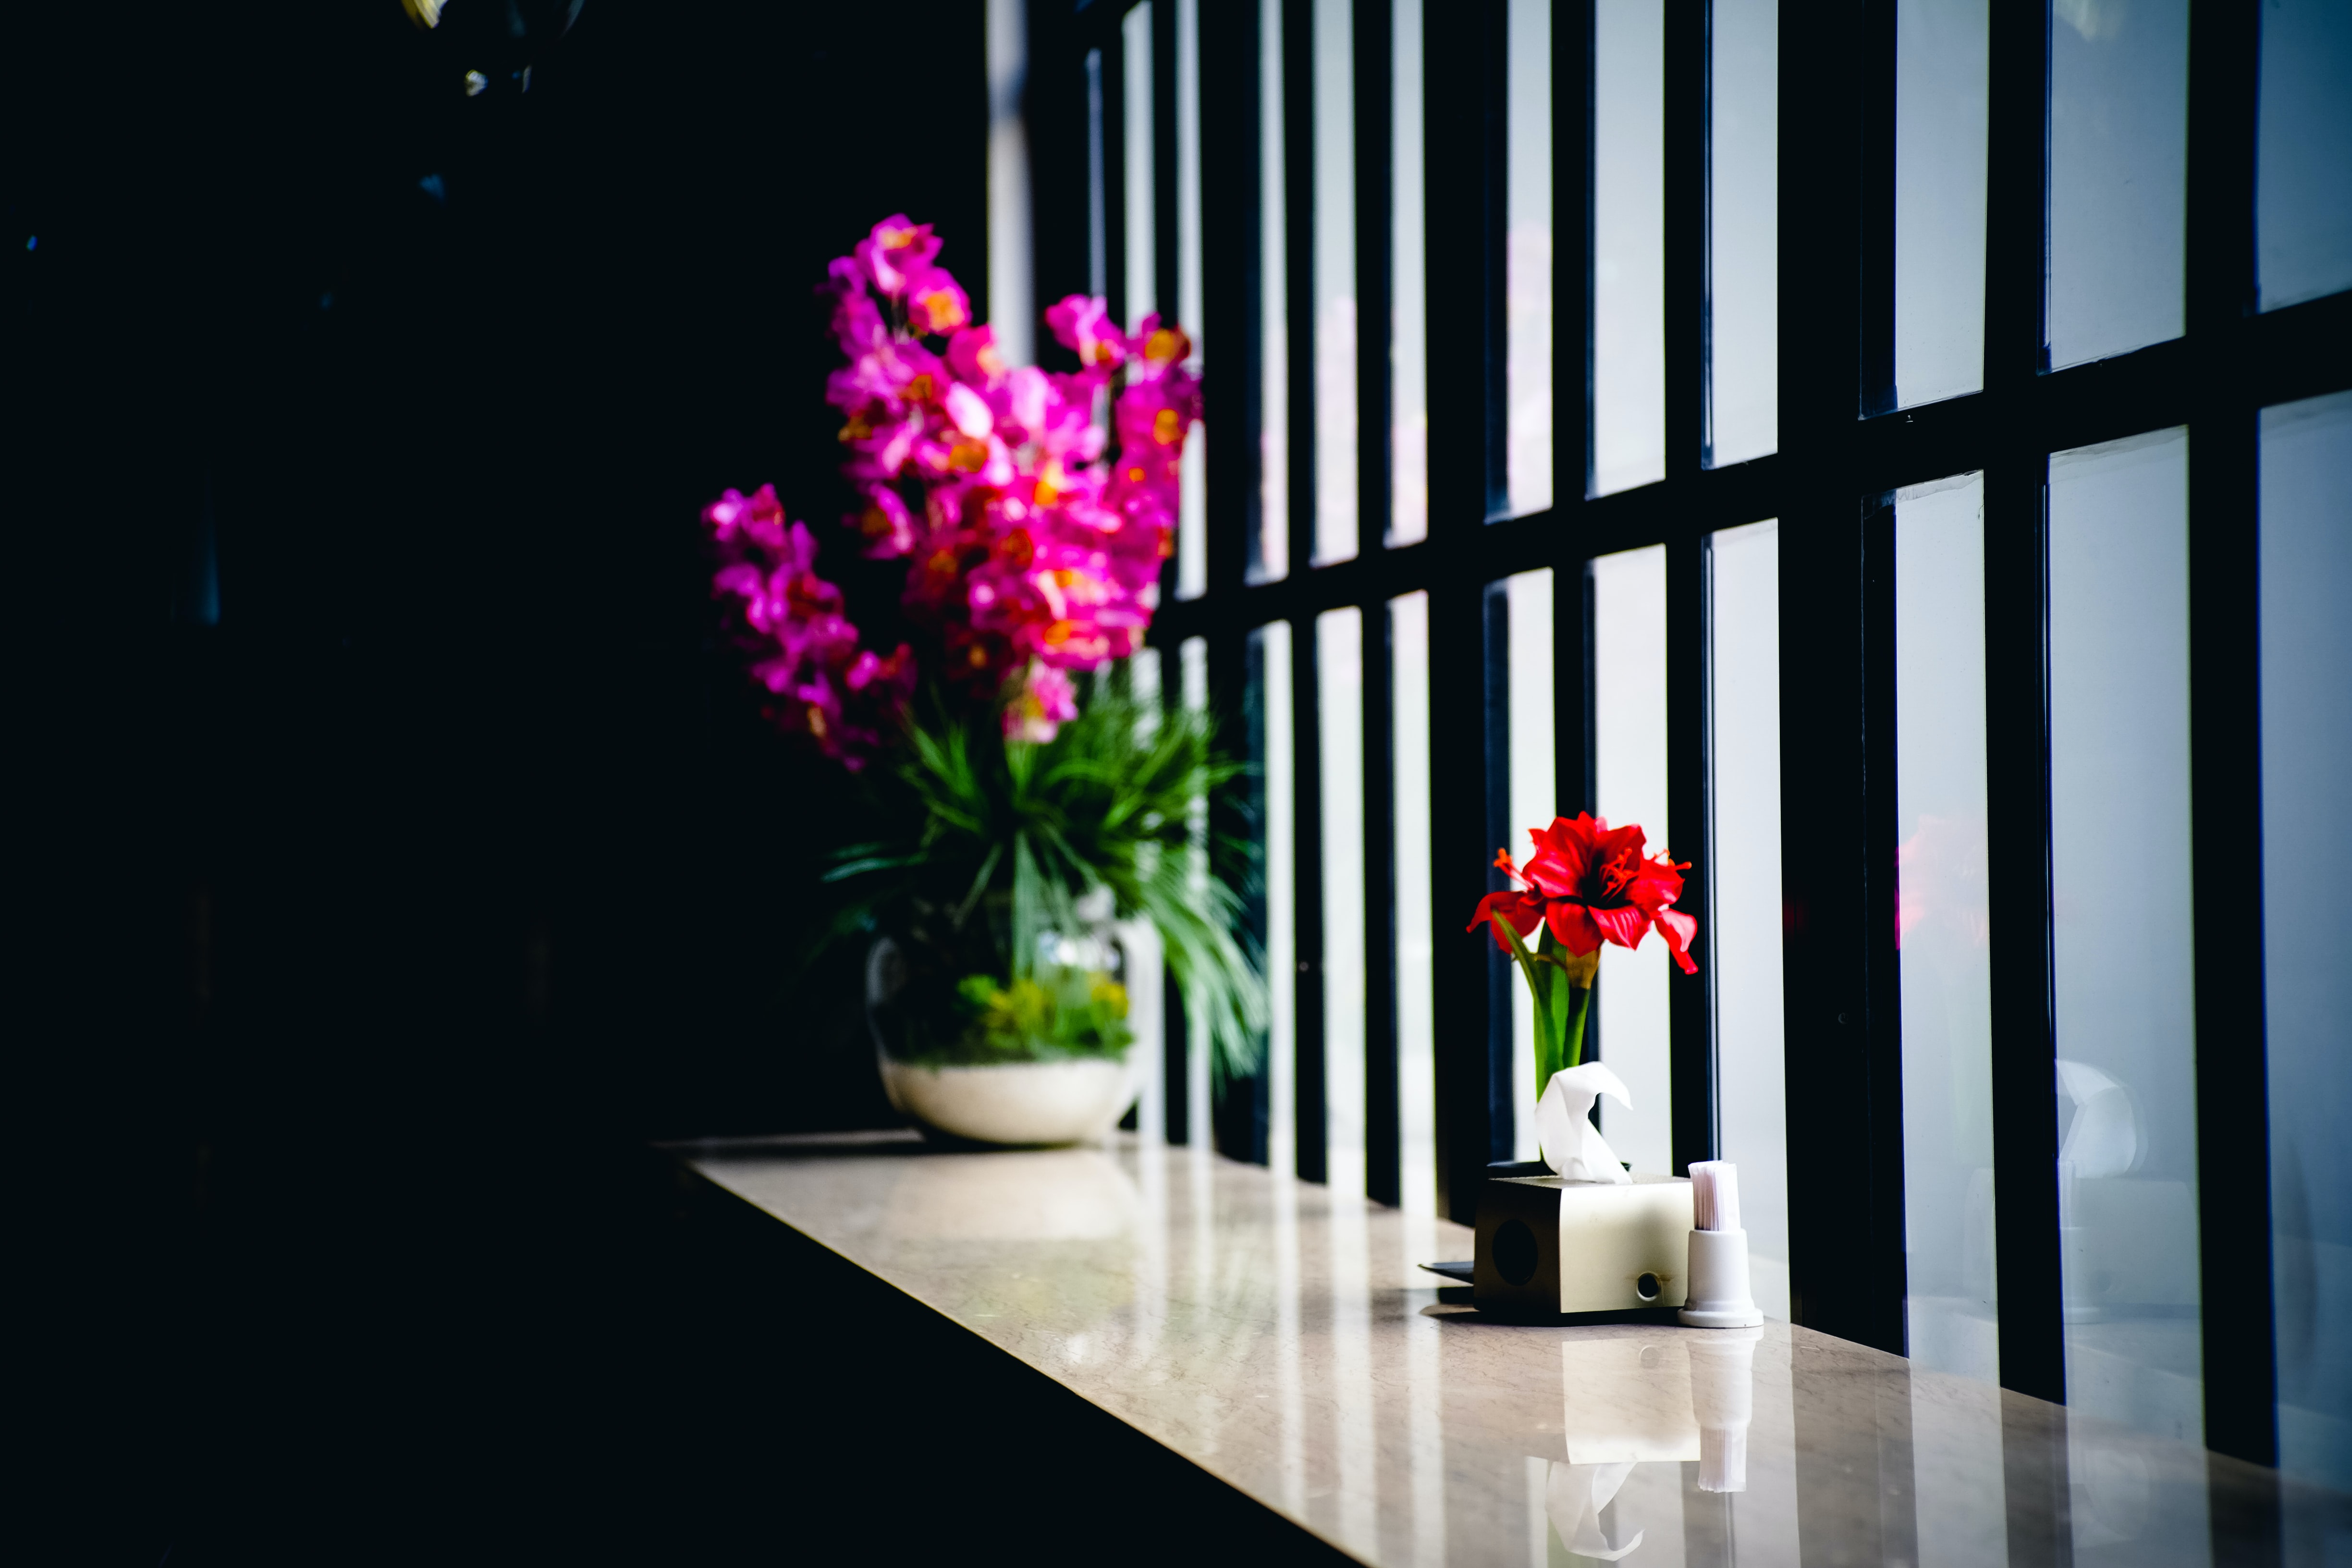 Small red flowers in a pot and a larger flowerpot with pink flowers on a marble windowsill